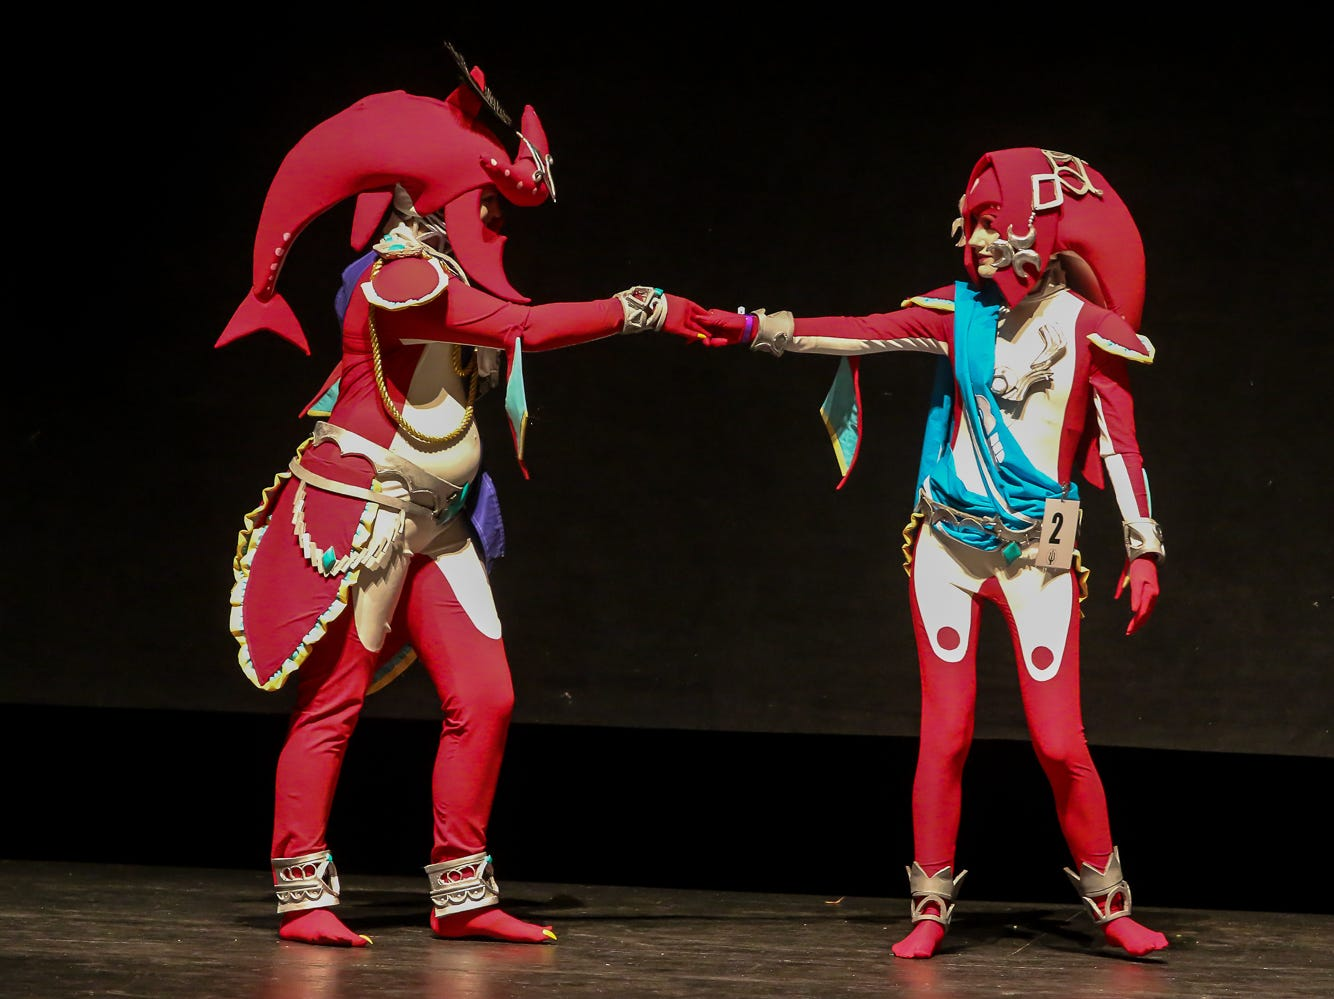 People compete in the Master's Division of the Pensacon cosplay contest presented by McGuire's Irish Pub at the Saenger Theatre on Saturday, February 23, 2019.